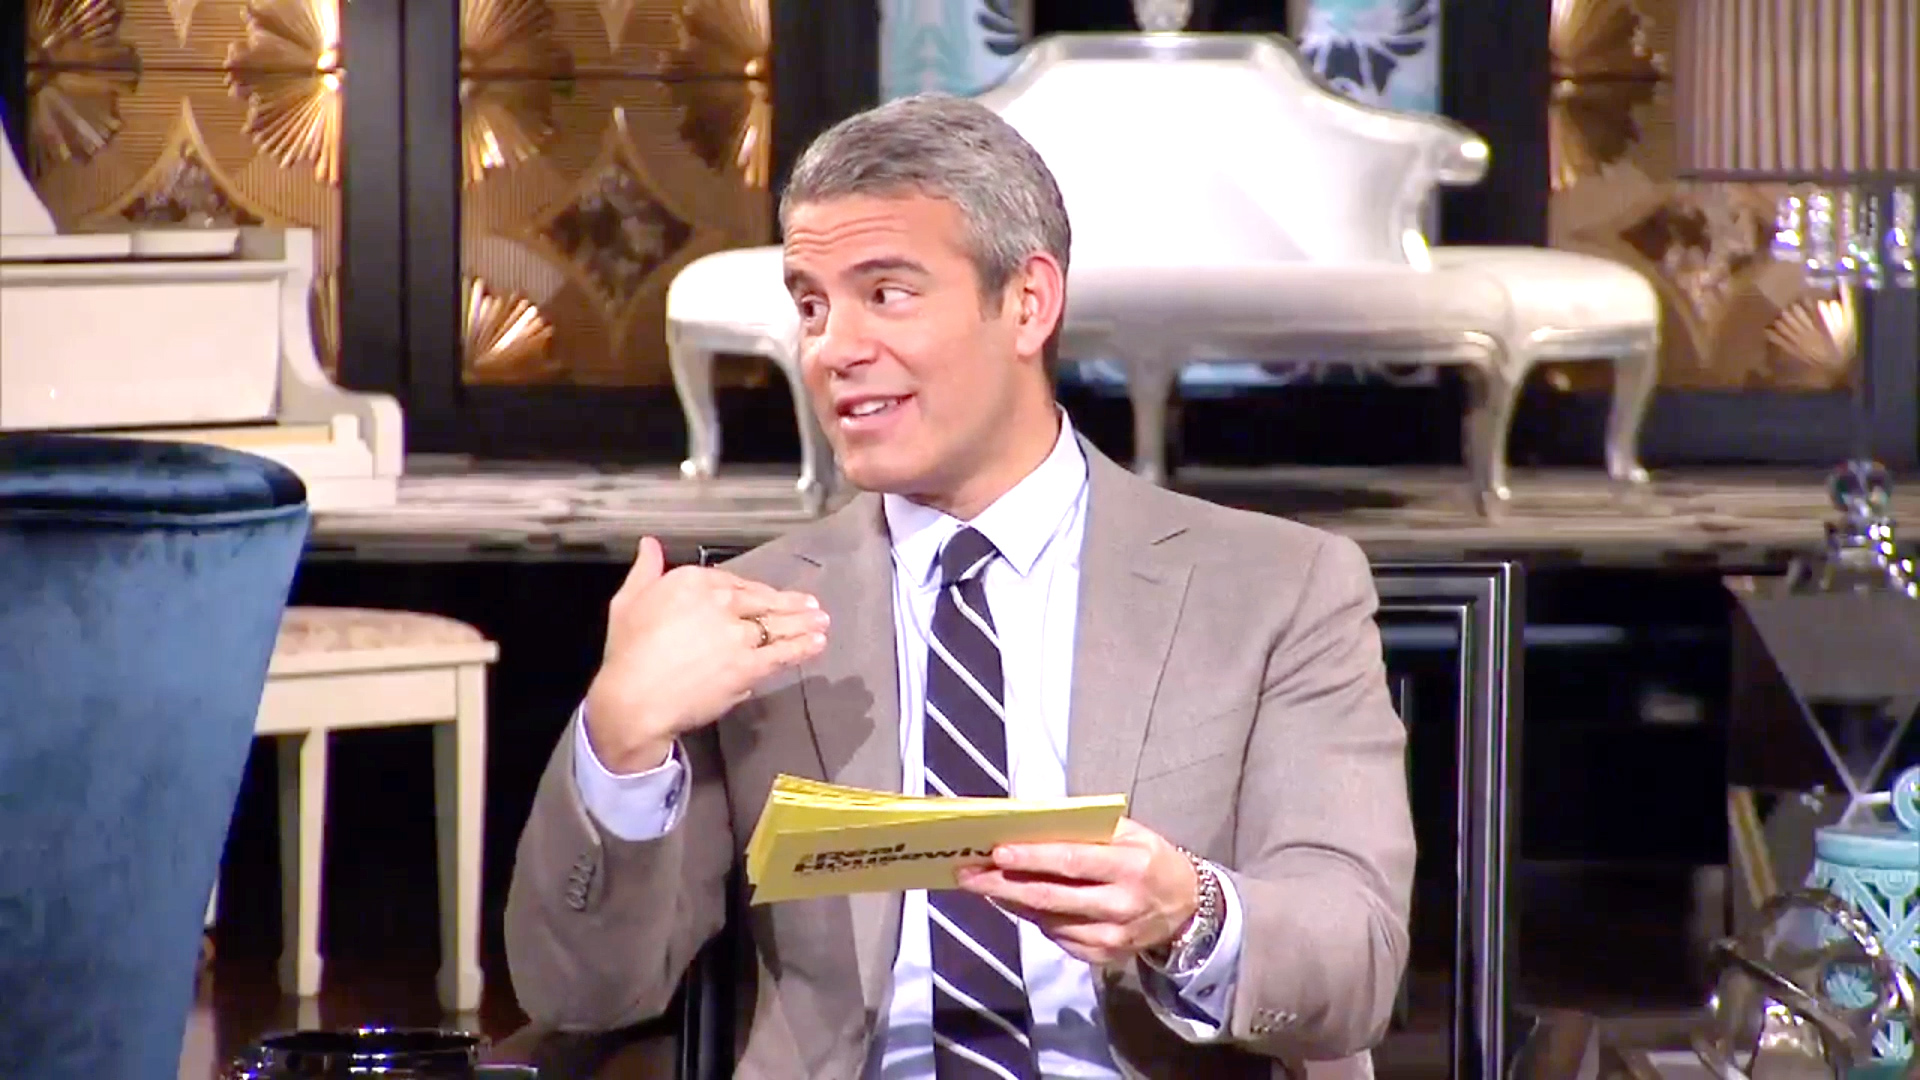 Andy Cohen's Best Reunion Part 1 Reads